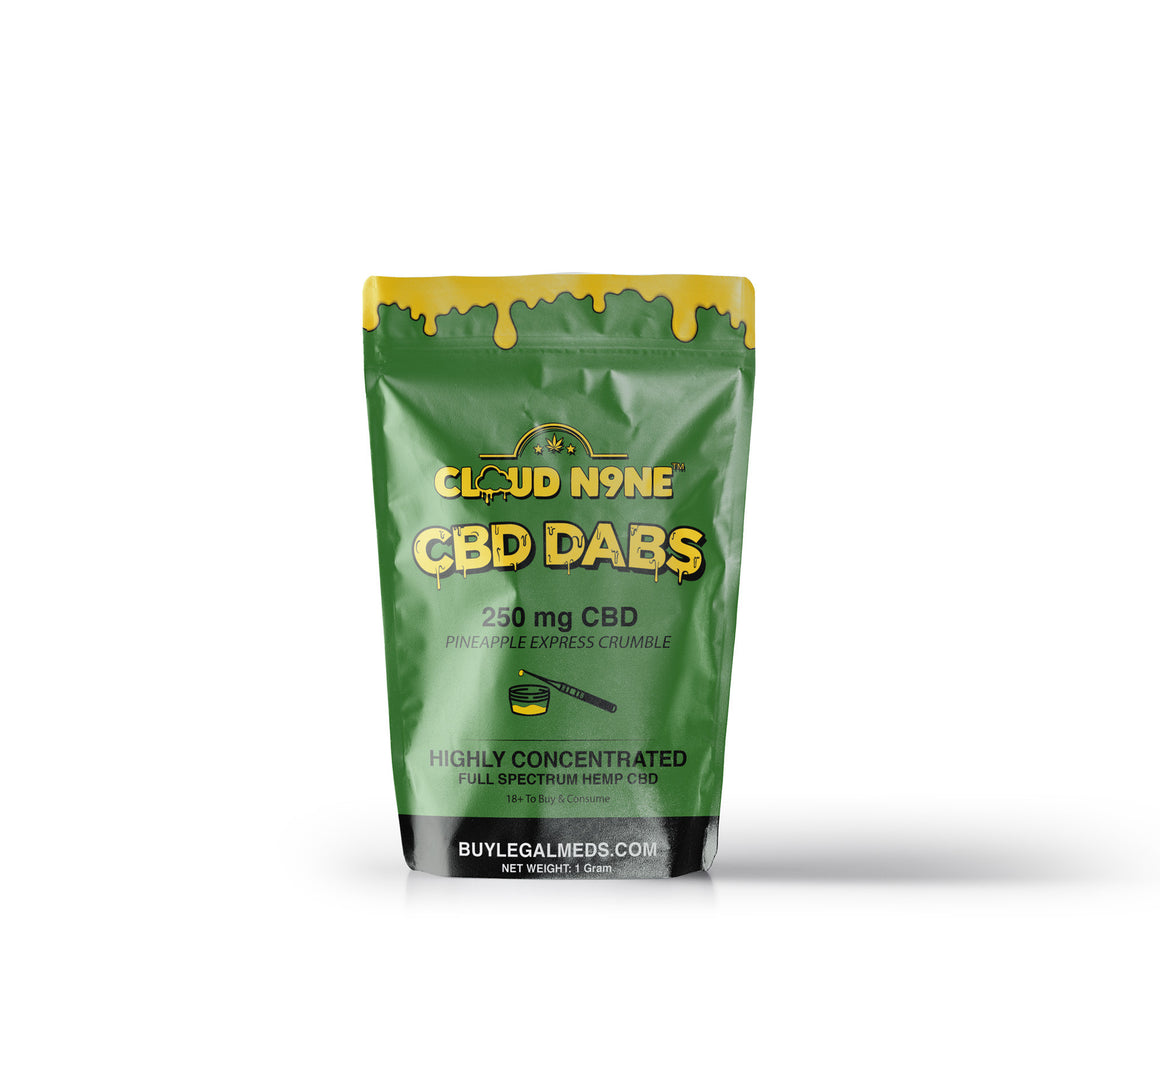 Cloud N9ne CBD Dabs (Crumble) - 1 Gram (250mg of CBD - Helps relieve anxiety, stress, mild pain and more)